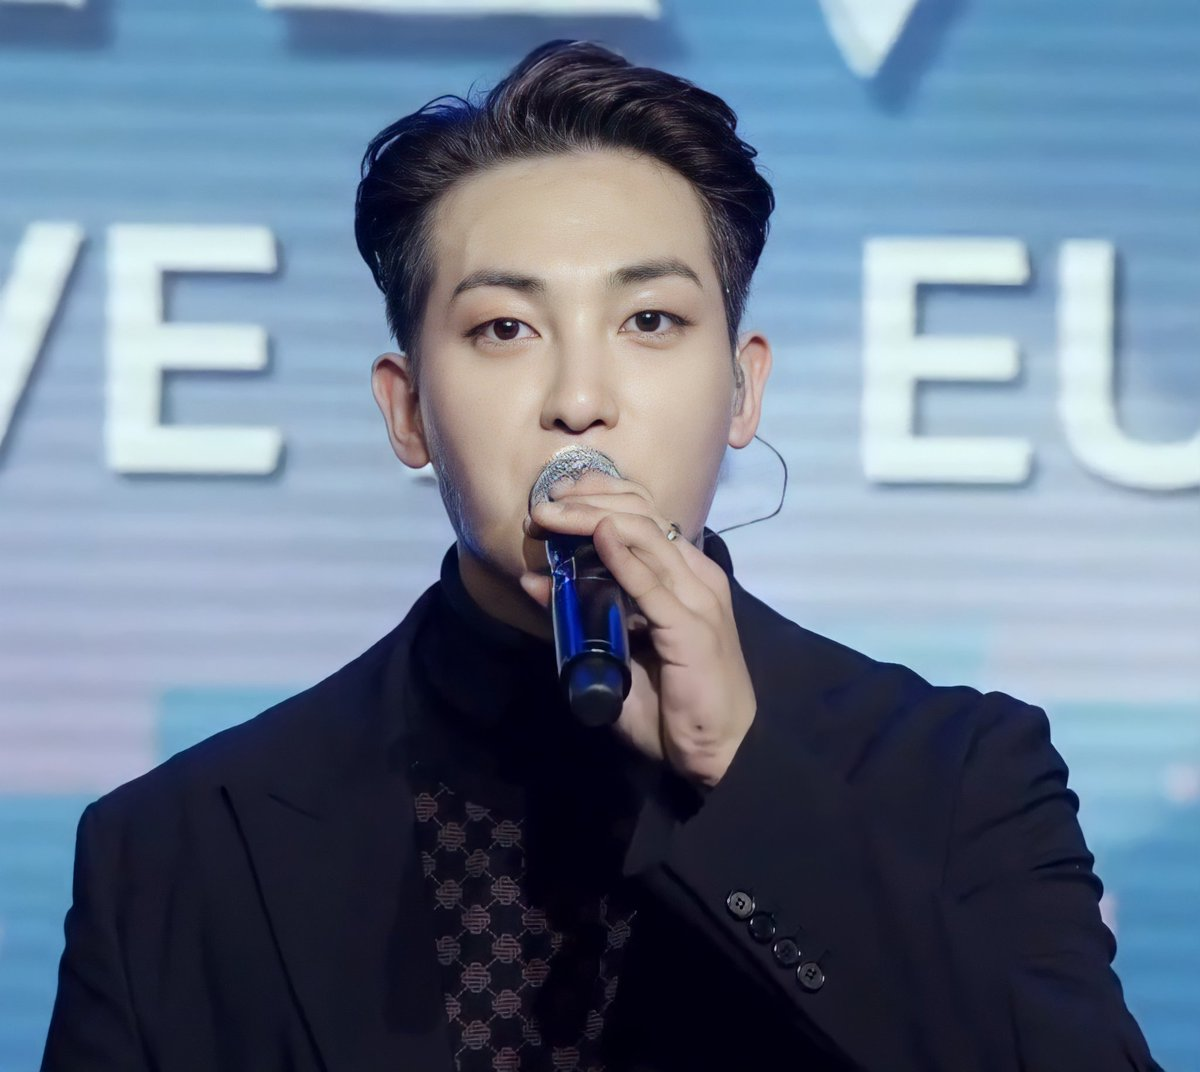 [📸]   #ZIU #지우   #VAV #브이에이브이  #Europe #유럽 #MEETnLIVE #OnlineConcert #VAMPZ #뱀즈  @VAV_official https://t.co/gFXc0CqlRk